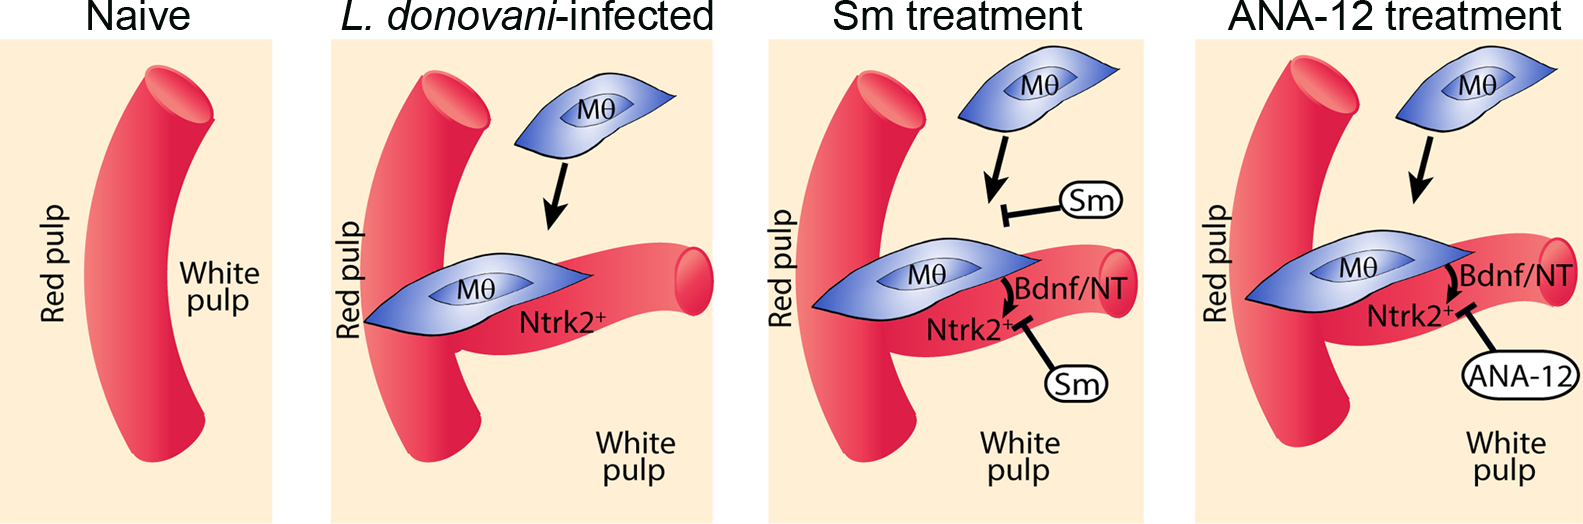 Schematic diagram of the effects of treatment with RTK inhibitors during <i>L.donovani</i> infection.